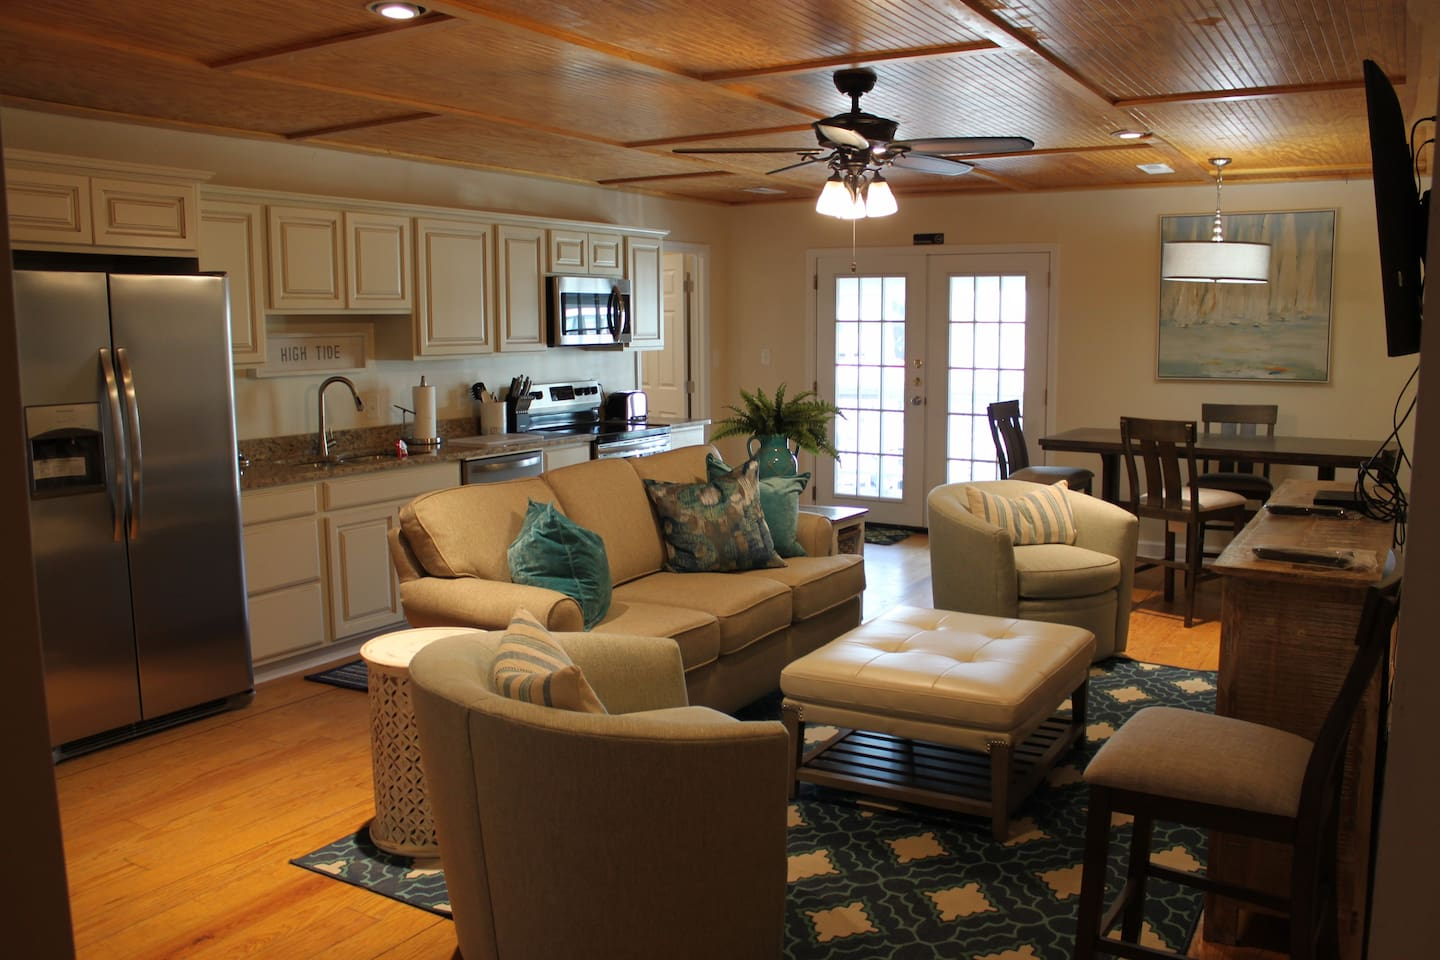 Main living area with fully functional kitchen.  Kitchen has full fridge, oven, stove top, microwave, and dishwasher.